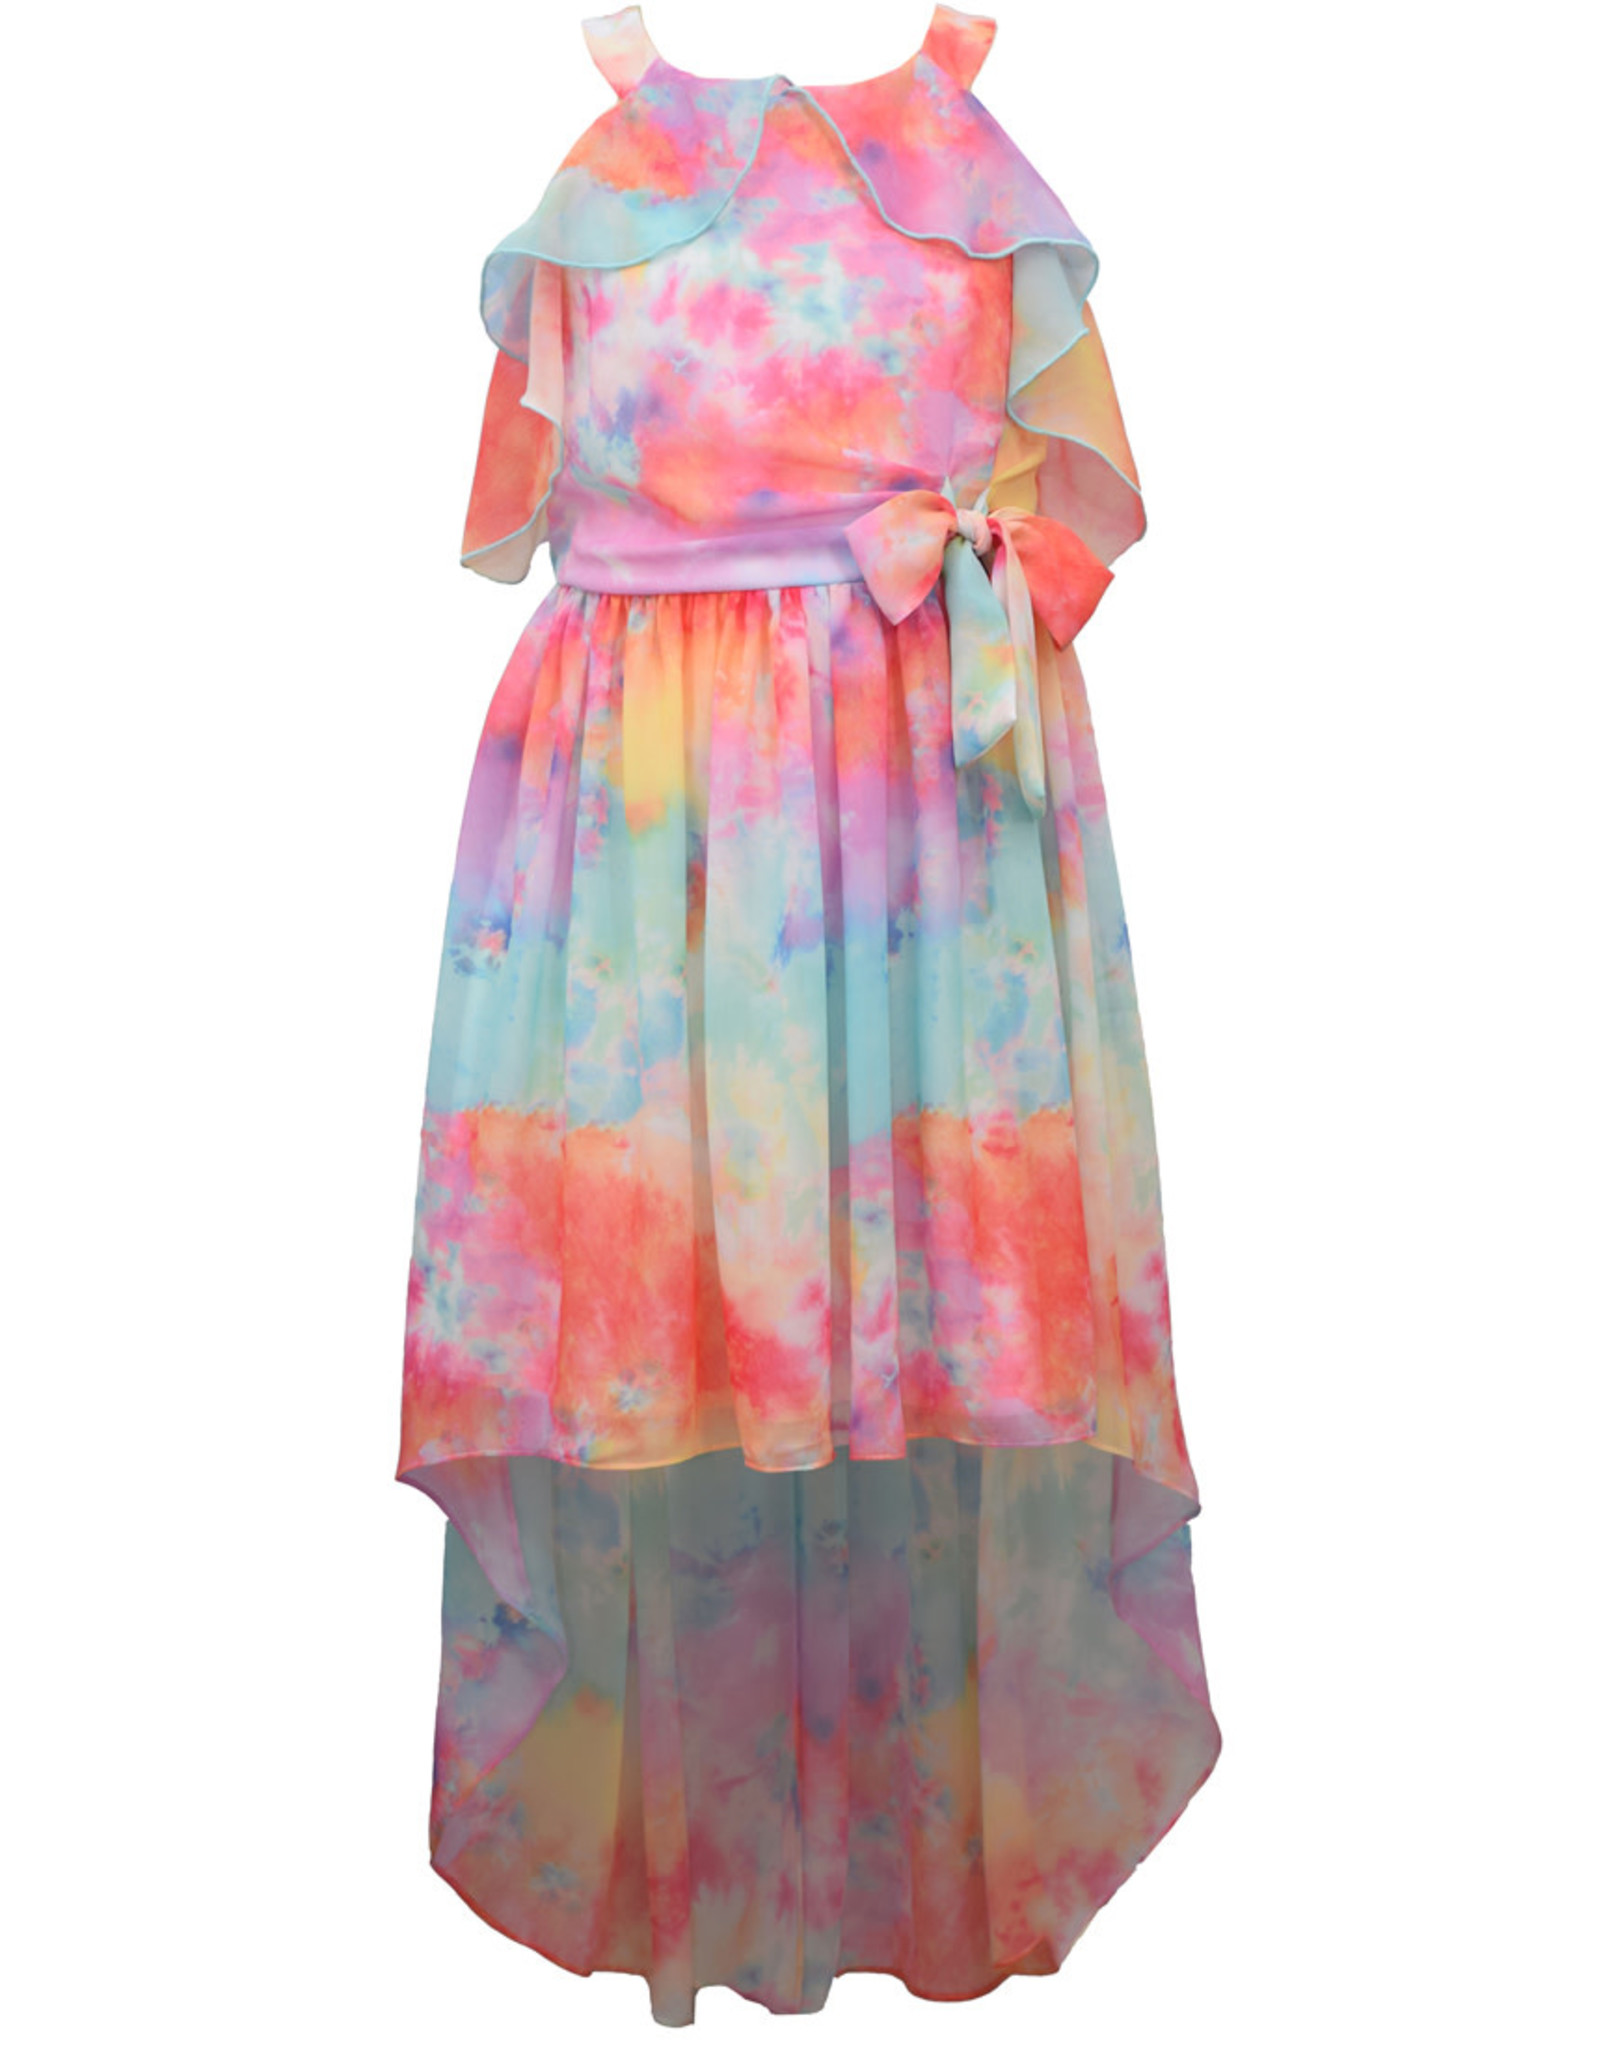 Bonnie  Jean Bonnie Jean- Tie Dye Chiffon Hi Low Dress